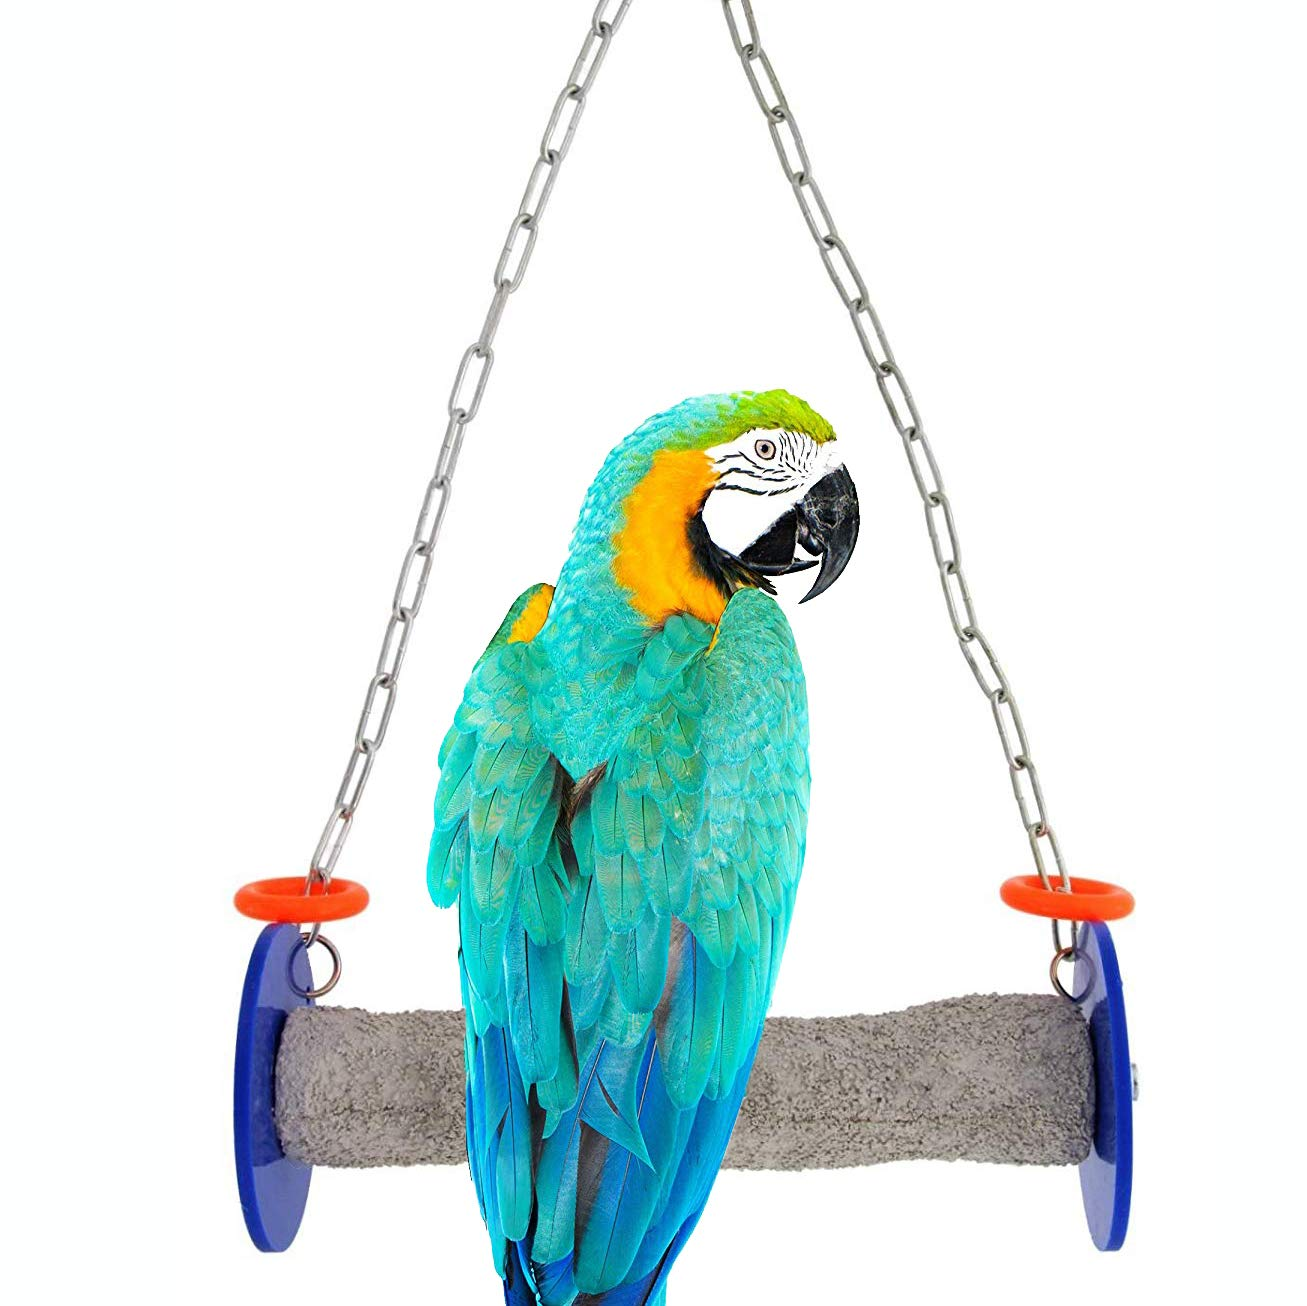 Sweet Feet and Beak Roll Swing and Perch for Birds, Keeps Nails and Beak in Top Condition and Stimulate Leg Muscles - Made in the USA -Safe and Non-Toxic, For Cages-Various Colors and Sizes Available by Sweet Feet and Beak